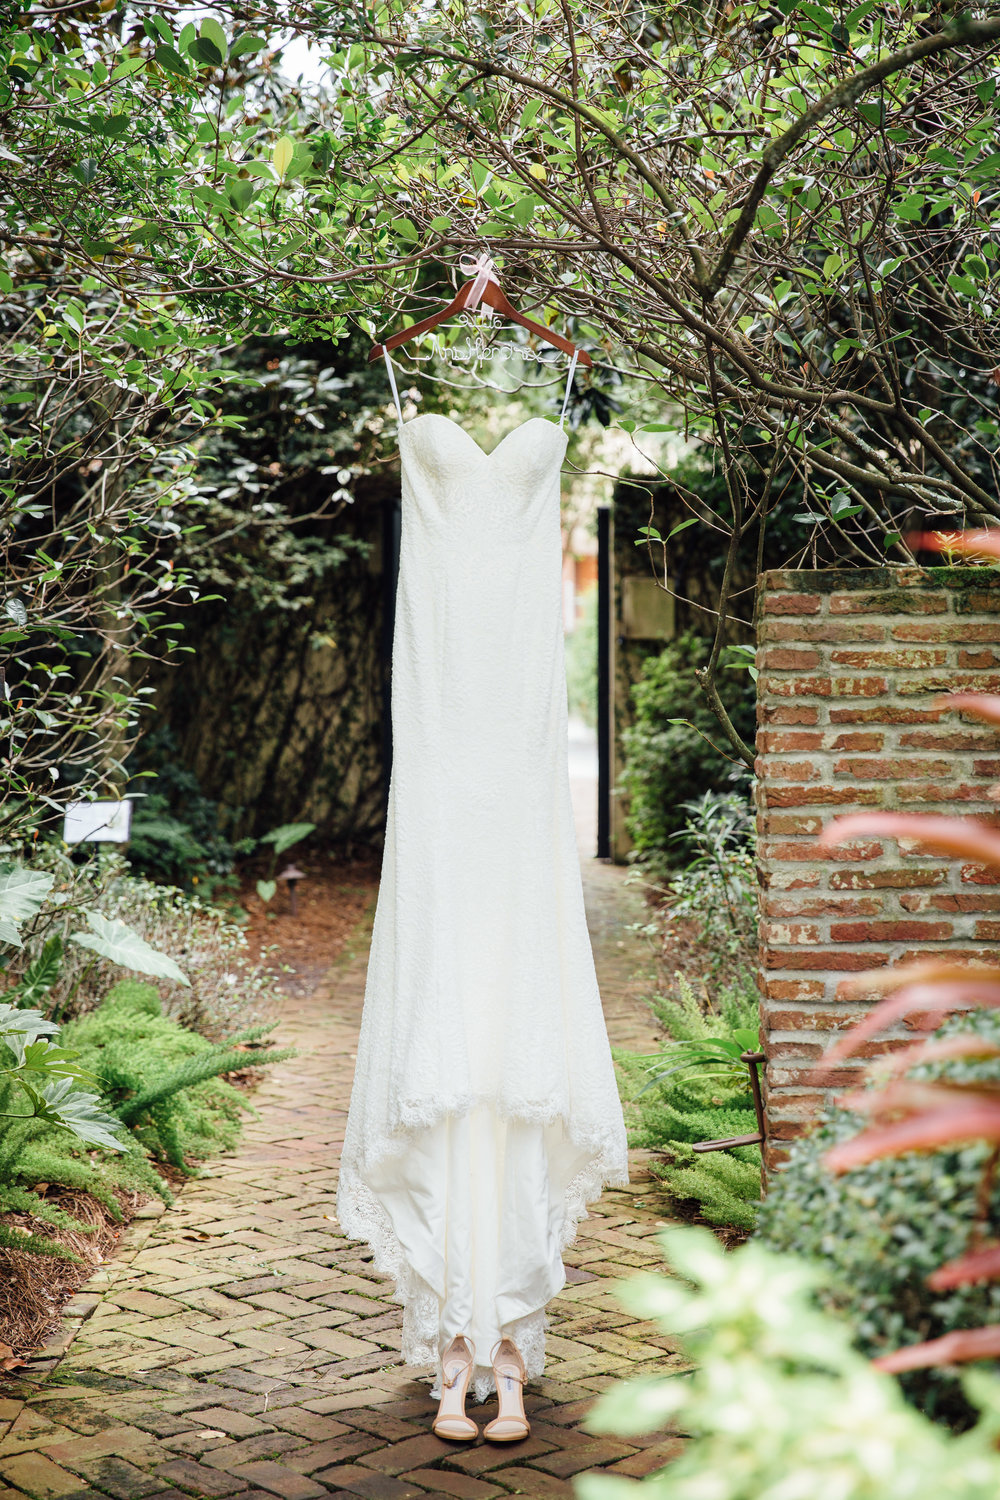 anna-benton-photography-savannah-bridal-boutique-ivory-and-beau-bridal-boutique-ti-adora-7552-lace-wedding-dress-jaclyn-jordan-anne-veil-southern-wedding-savannah-wedding-coastal-wedidng-savannah-wedding-planner-savannah-florist-savannah-weddings-1.jpg